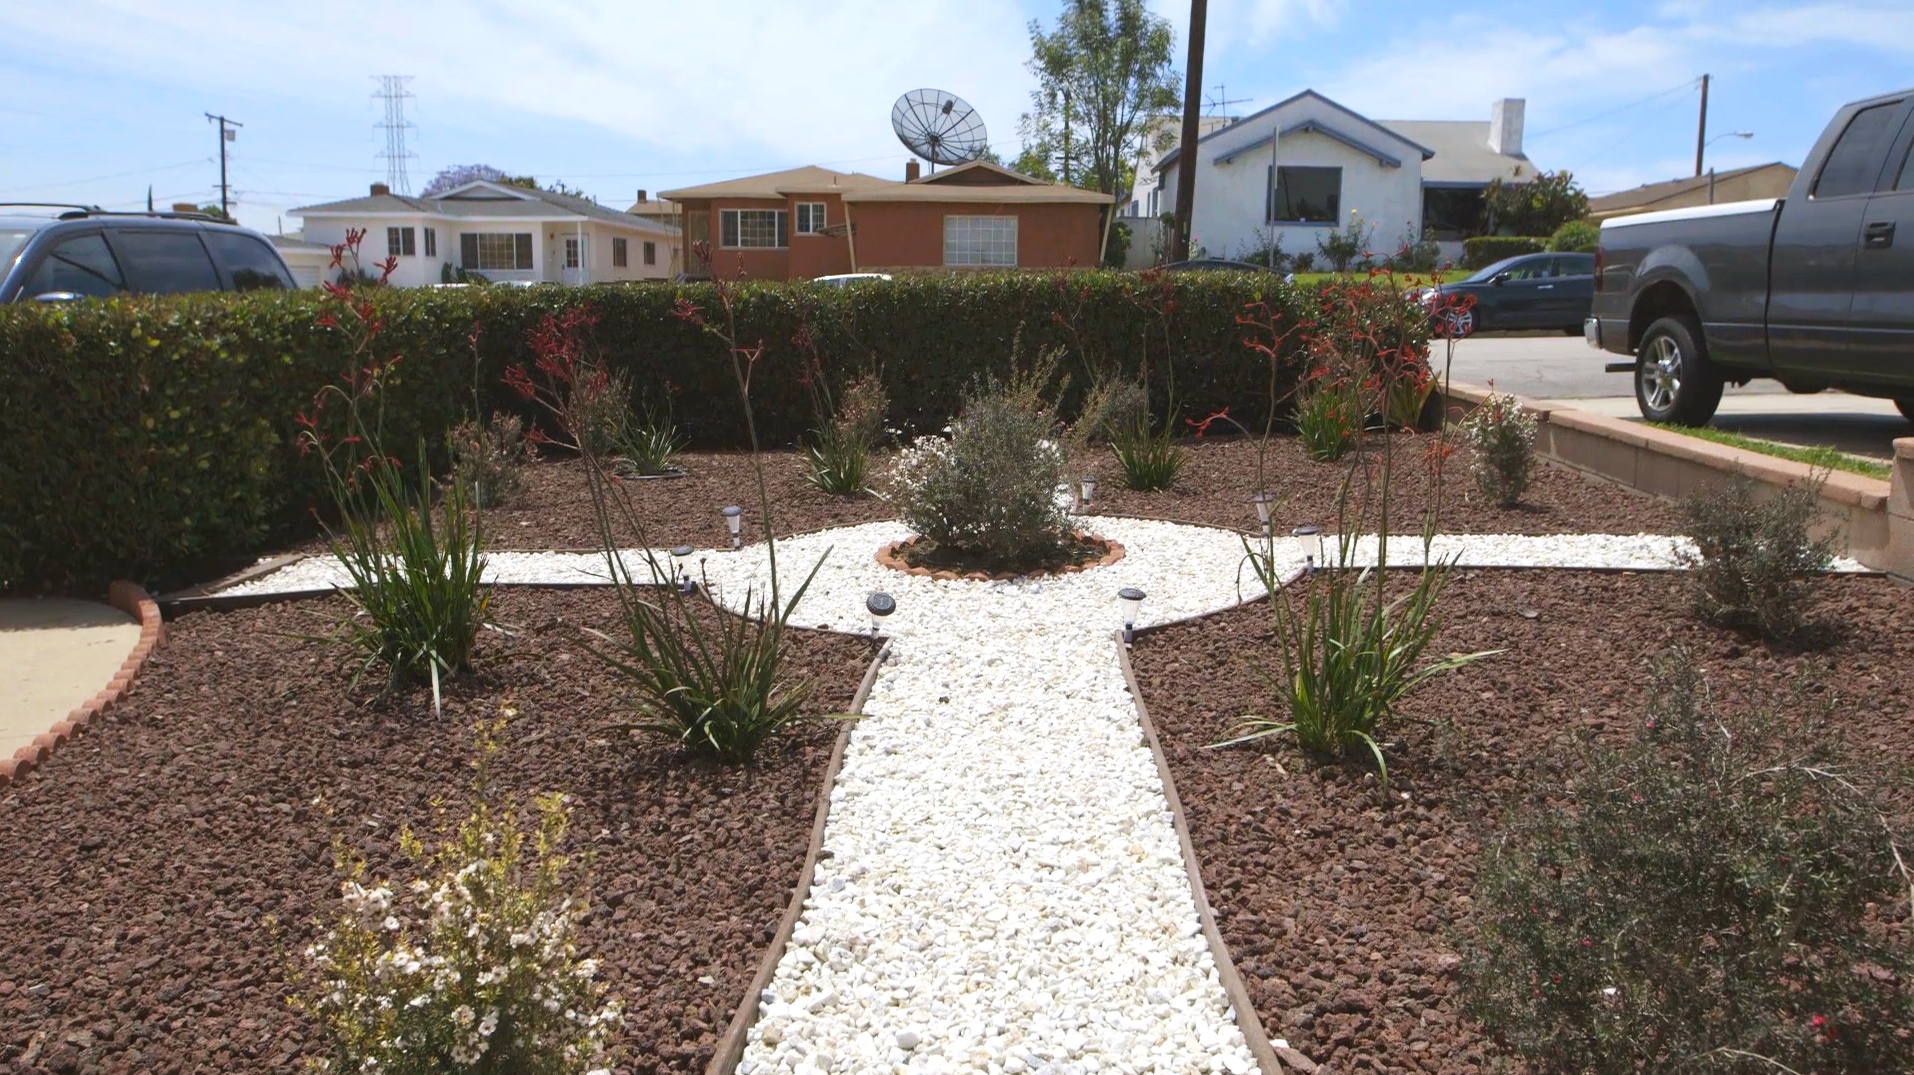 Garden Ideas To Replace Grass 5 water-saving ways to replace lawns during california's drought